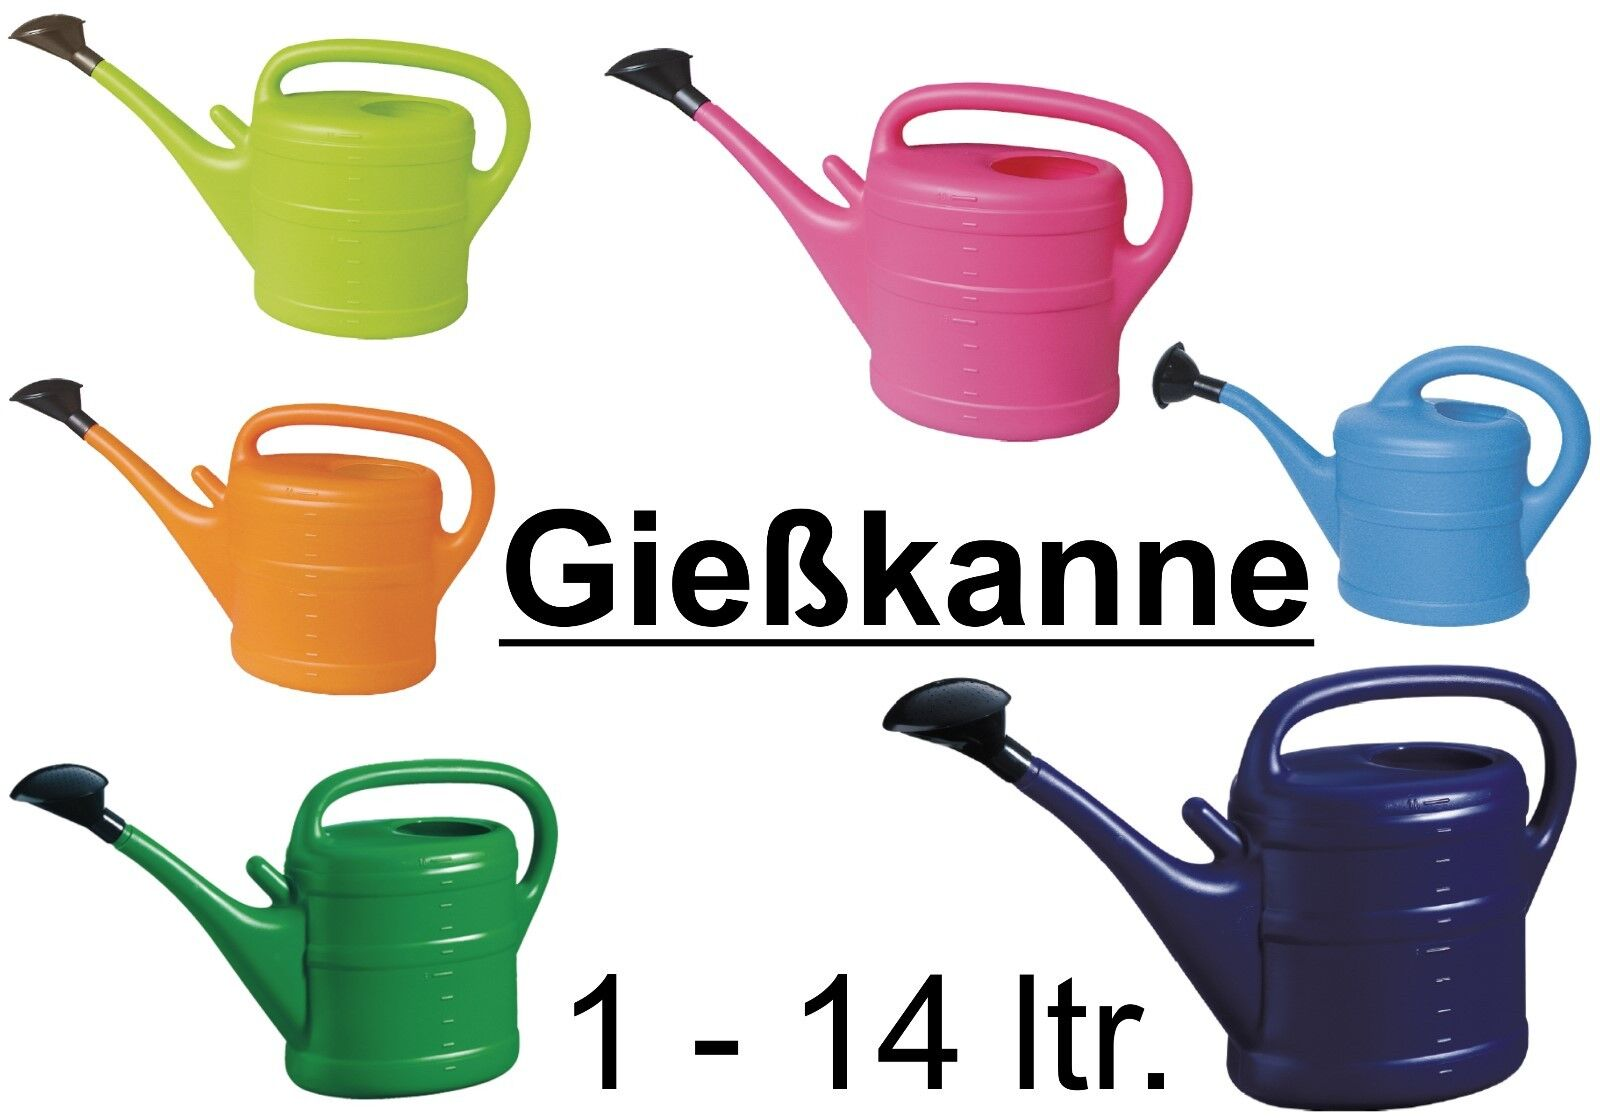 gie kanne 5 liter test vergleich gie kanne 5 liter g nstig kaufen. Black Bedroom Furniture Sets. Home Design Ideas